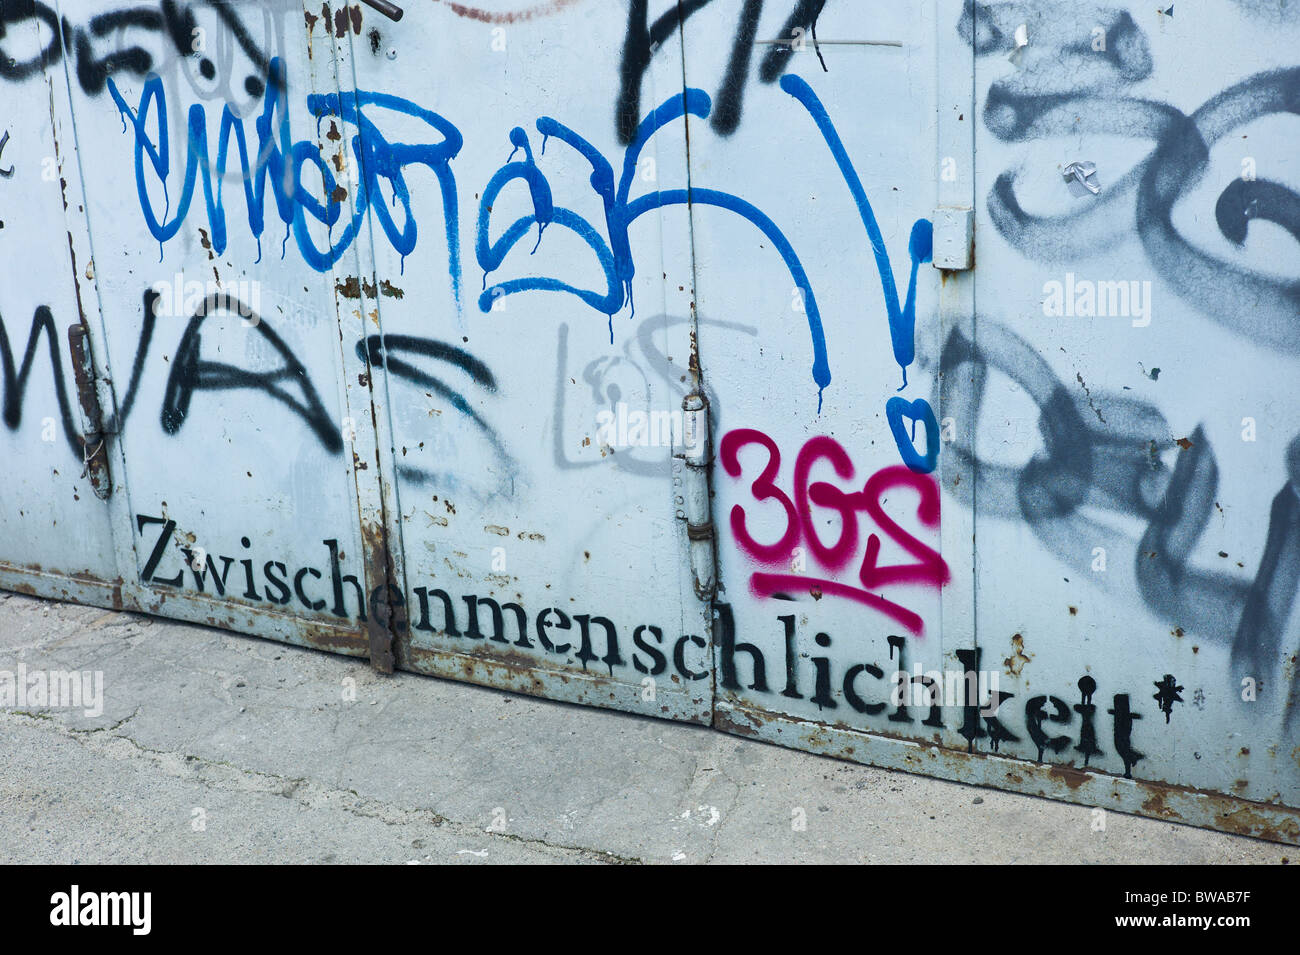 Greyish steel gate covered with tacks and the word 'Zwischenmenschlichkeit', Treptow Arena, Berlin, Germany - Stock Image